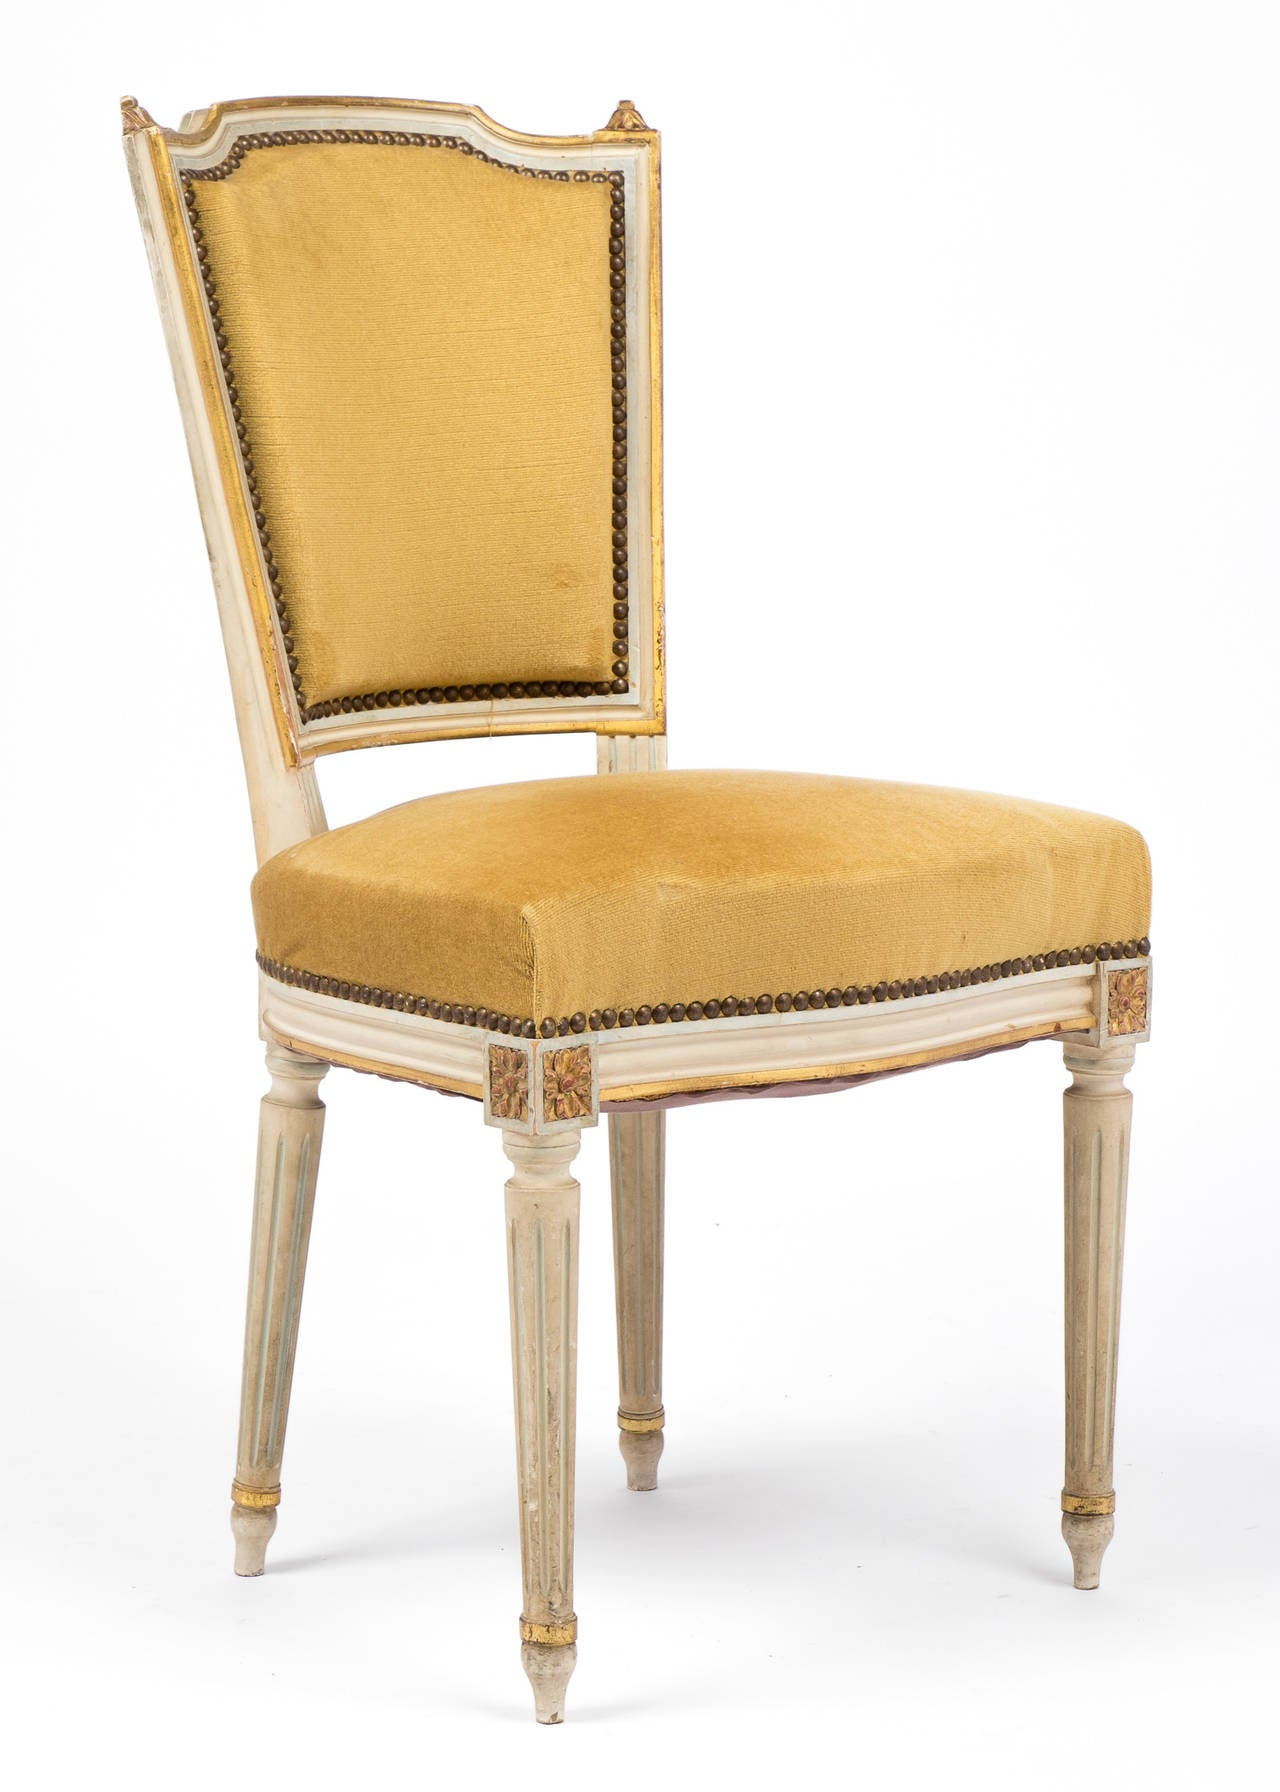 French Louis XVI Set of Six Dining Chairs at 1stdibs : 15C48louisxviyellowvelvetsetofdiningchairsdl from www.1stdibs.com size 1280 x 1792 jpeg 150kB